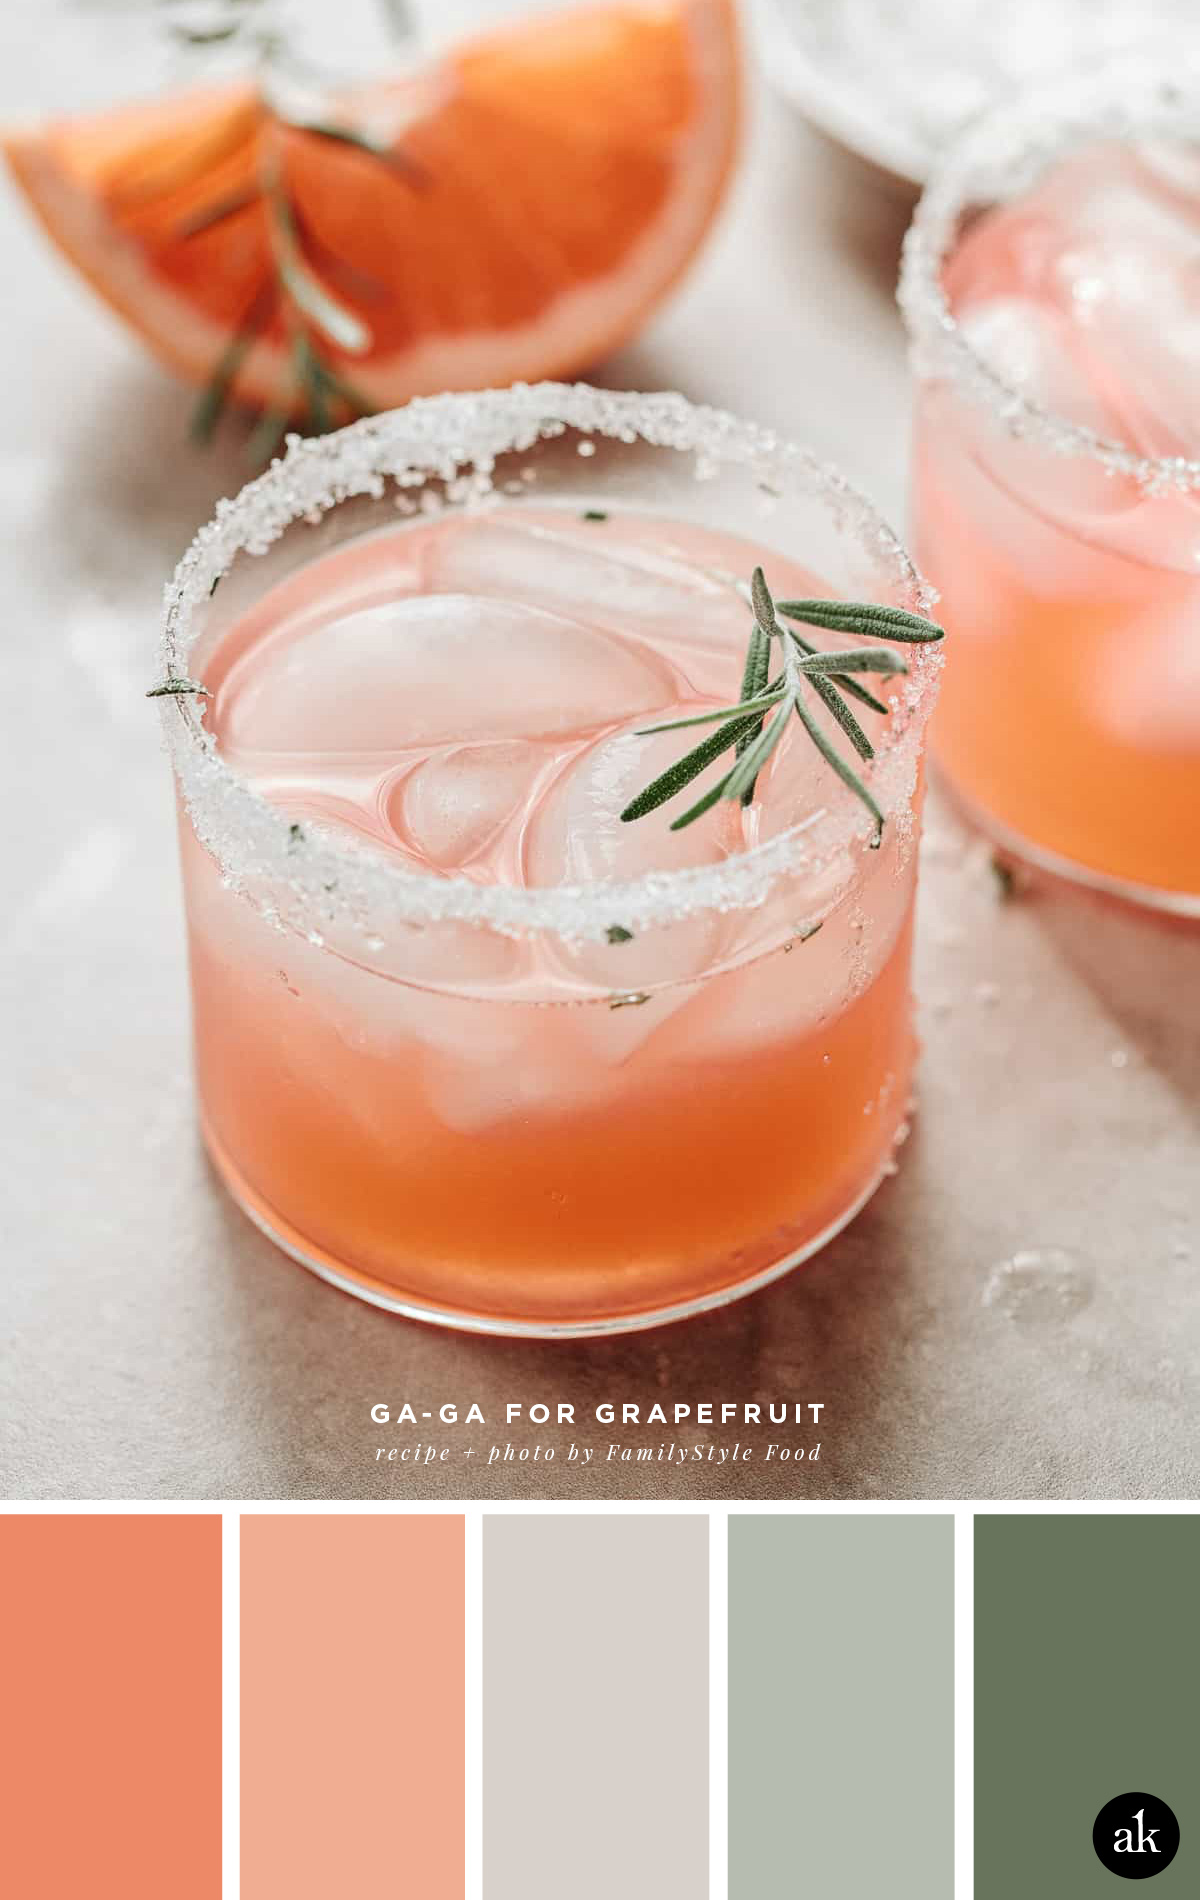 another grapefruit-and-rosemary-cocktail-inspired color palette | grapefruit, peach, gray, sage, green | photo and recipe by FamilyStyle Food